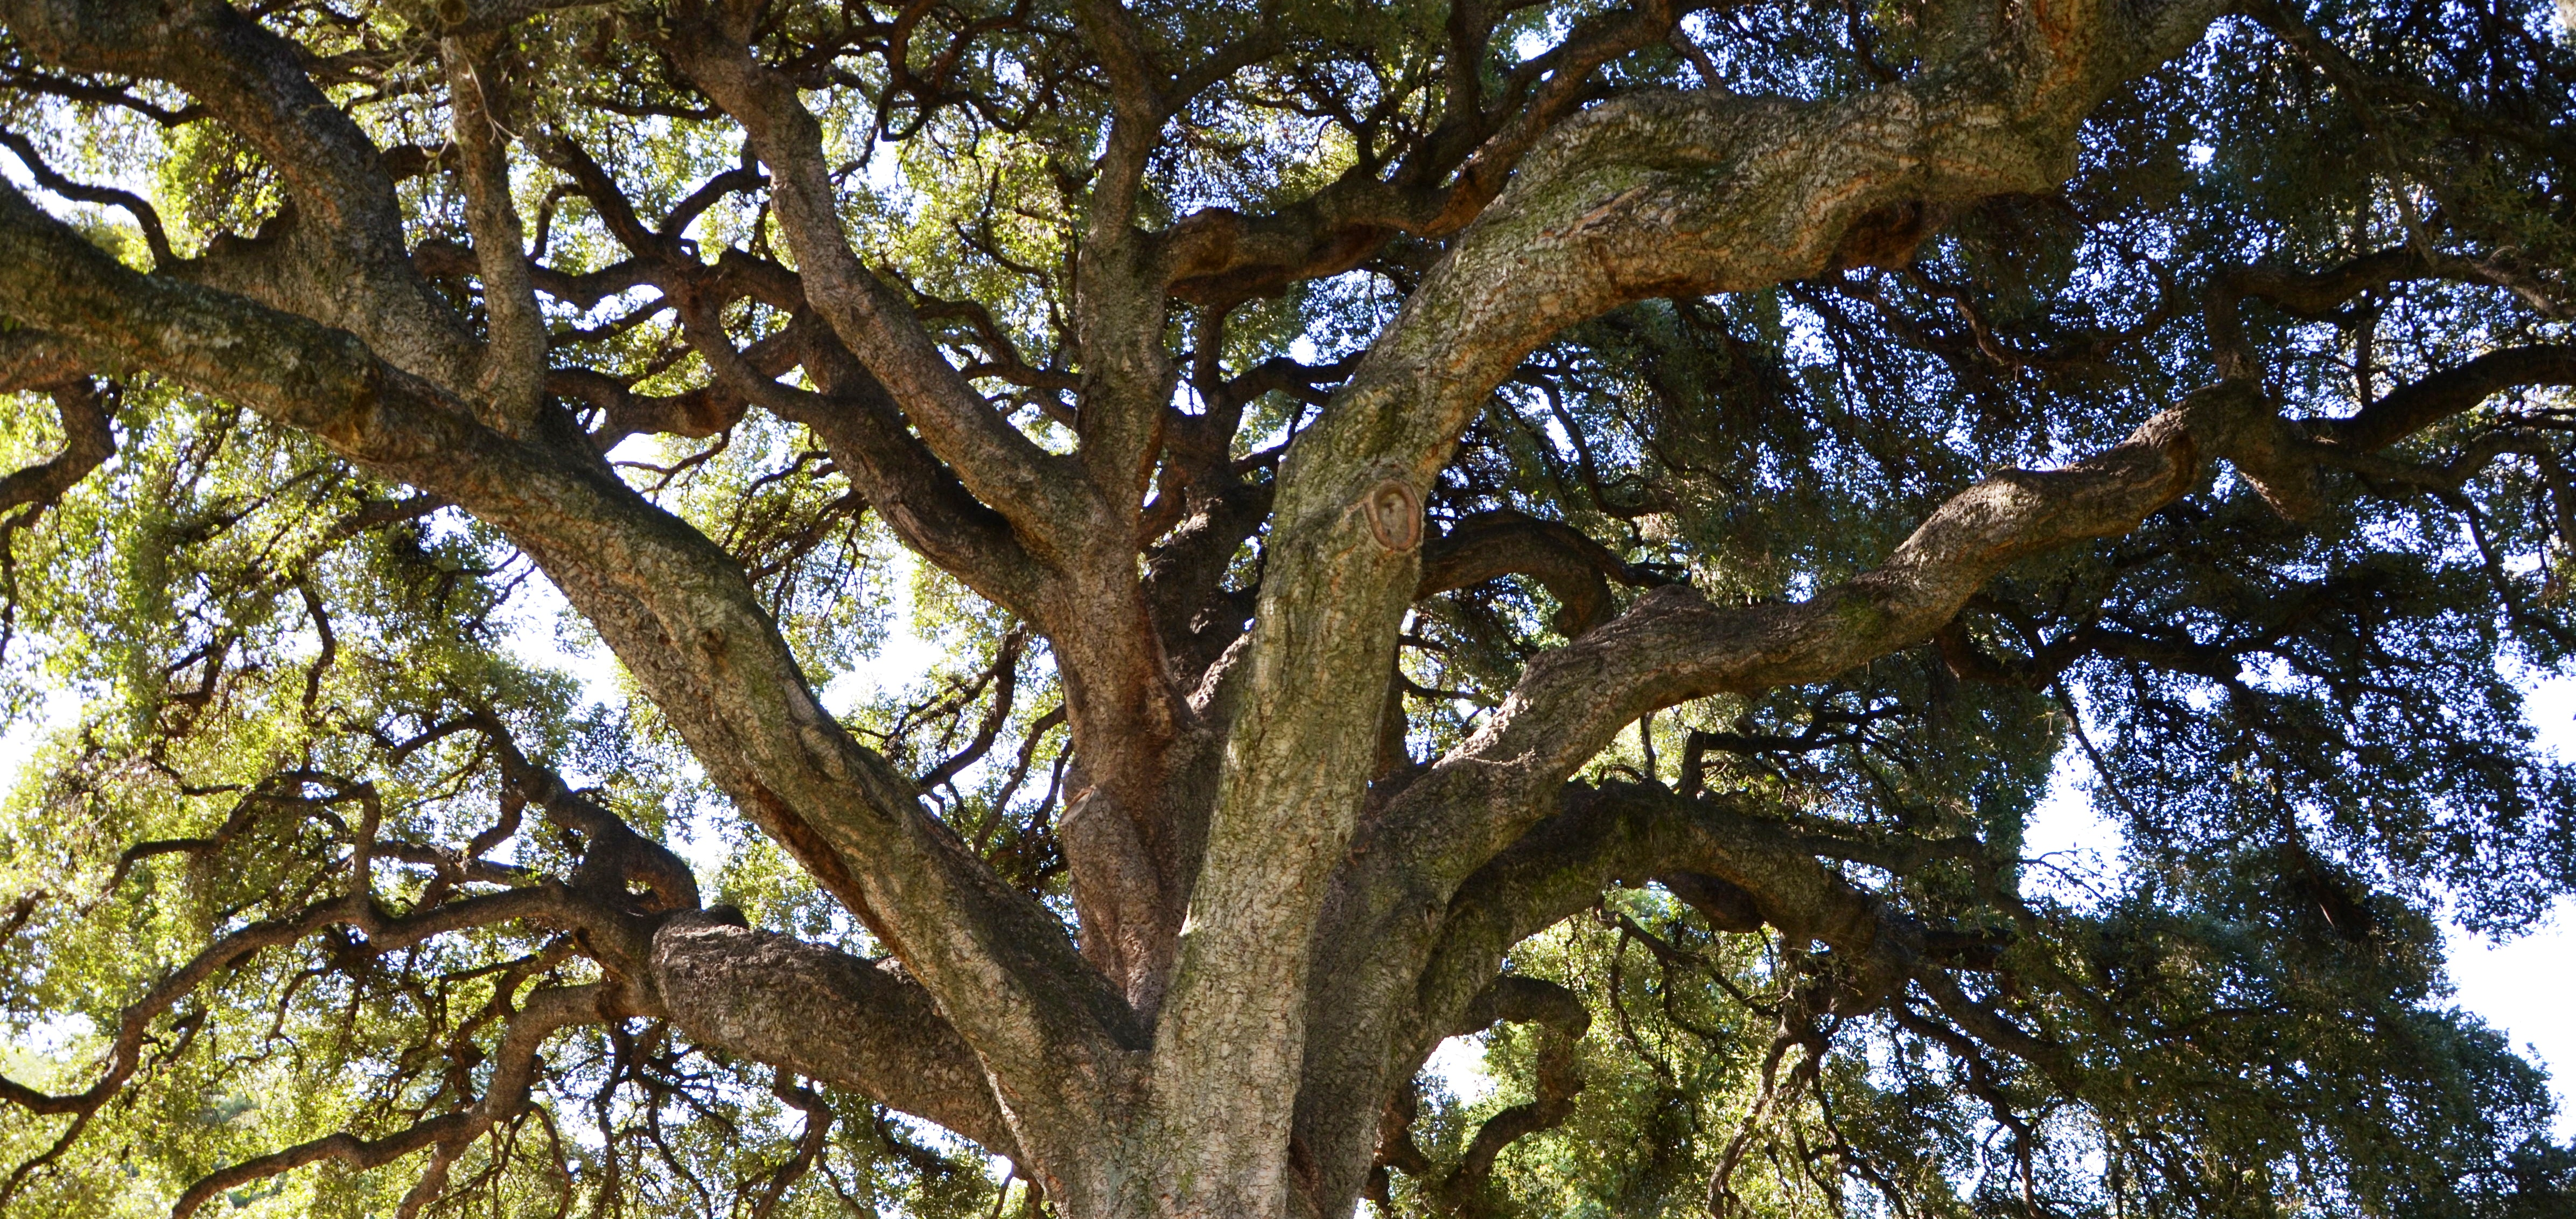 Up shot image of cork oak Quercus suber, one of the oldest plants in the gardens